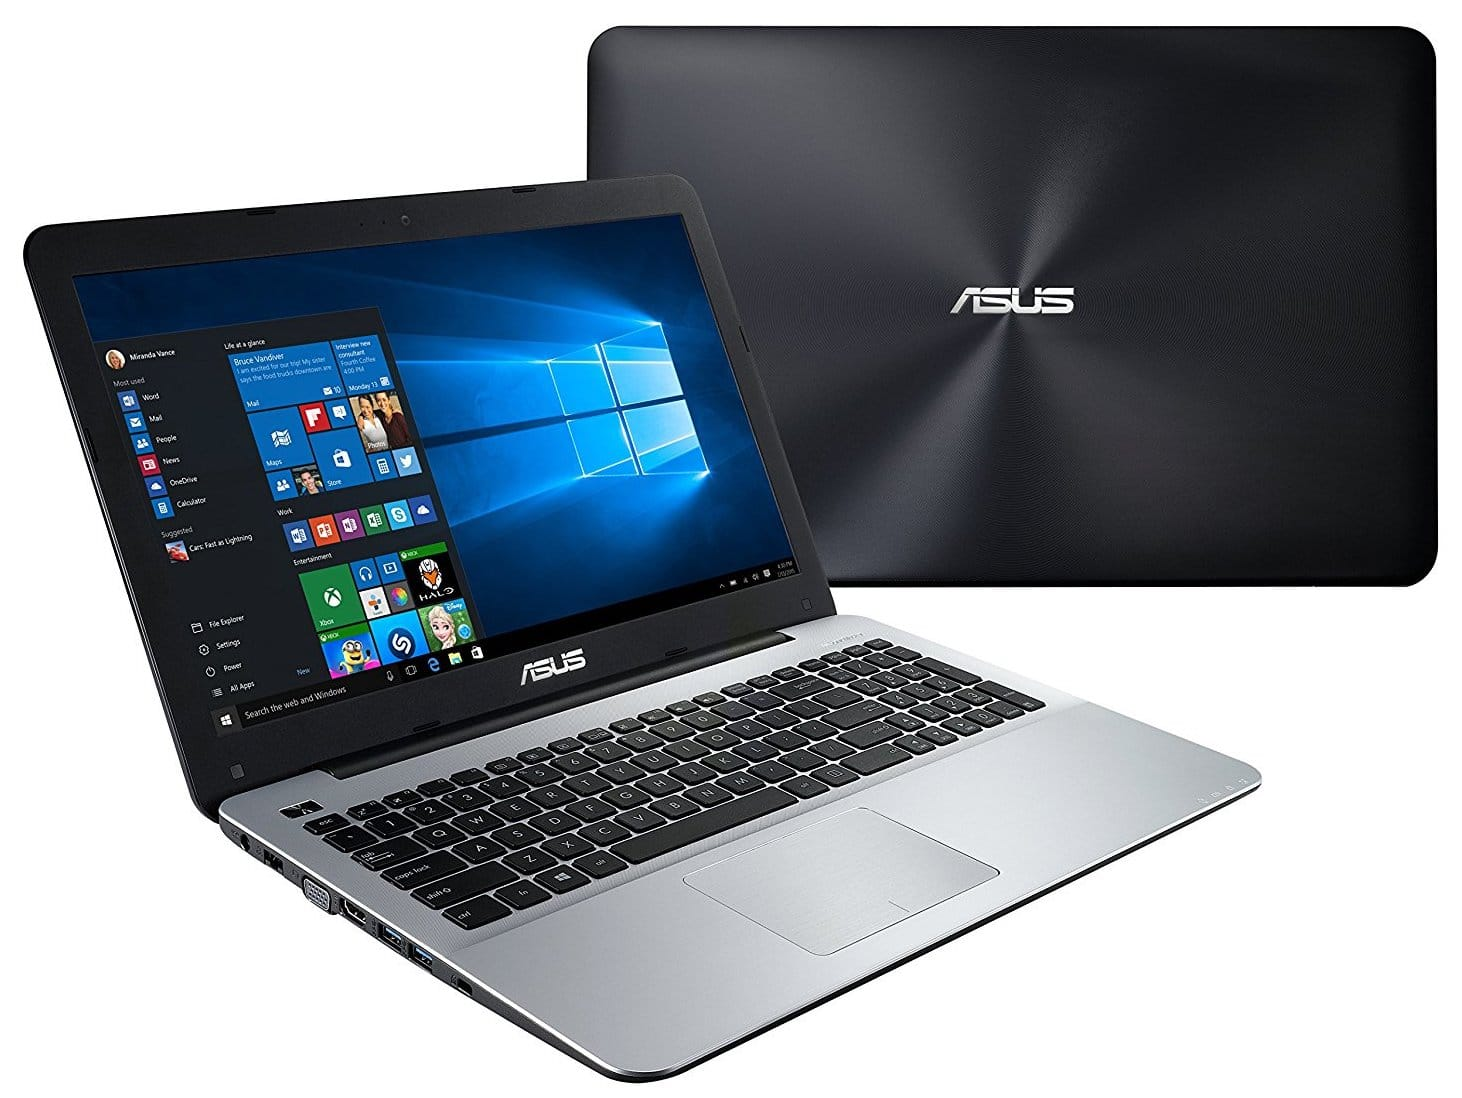 Asus R556QA-DM074T, PC portable 15 pouces SSD Full HD Bristol Ridge promo 489€